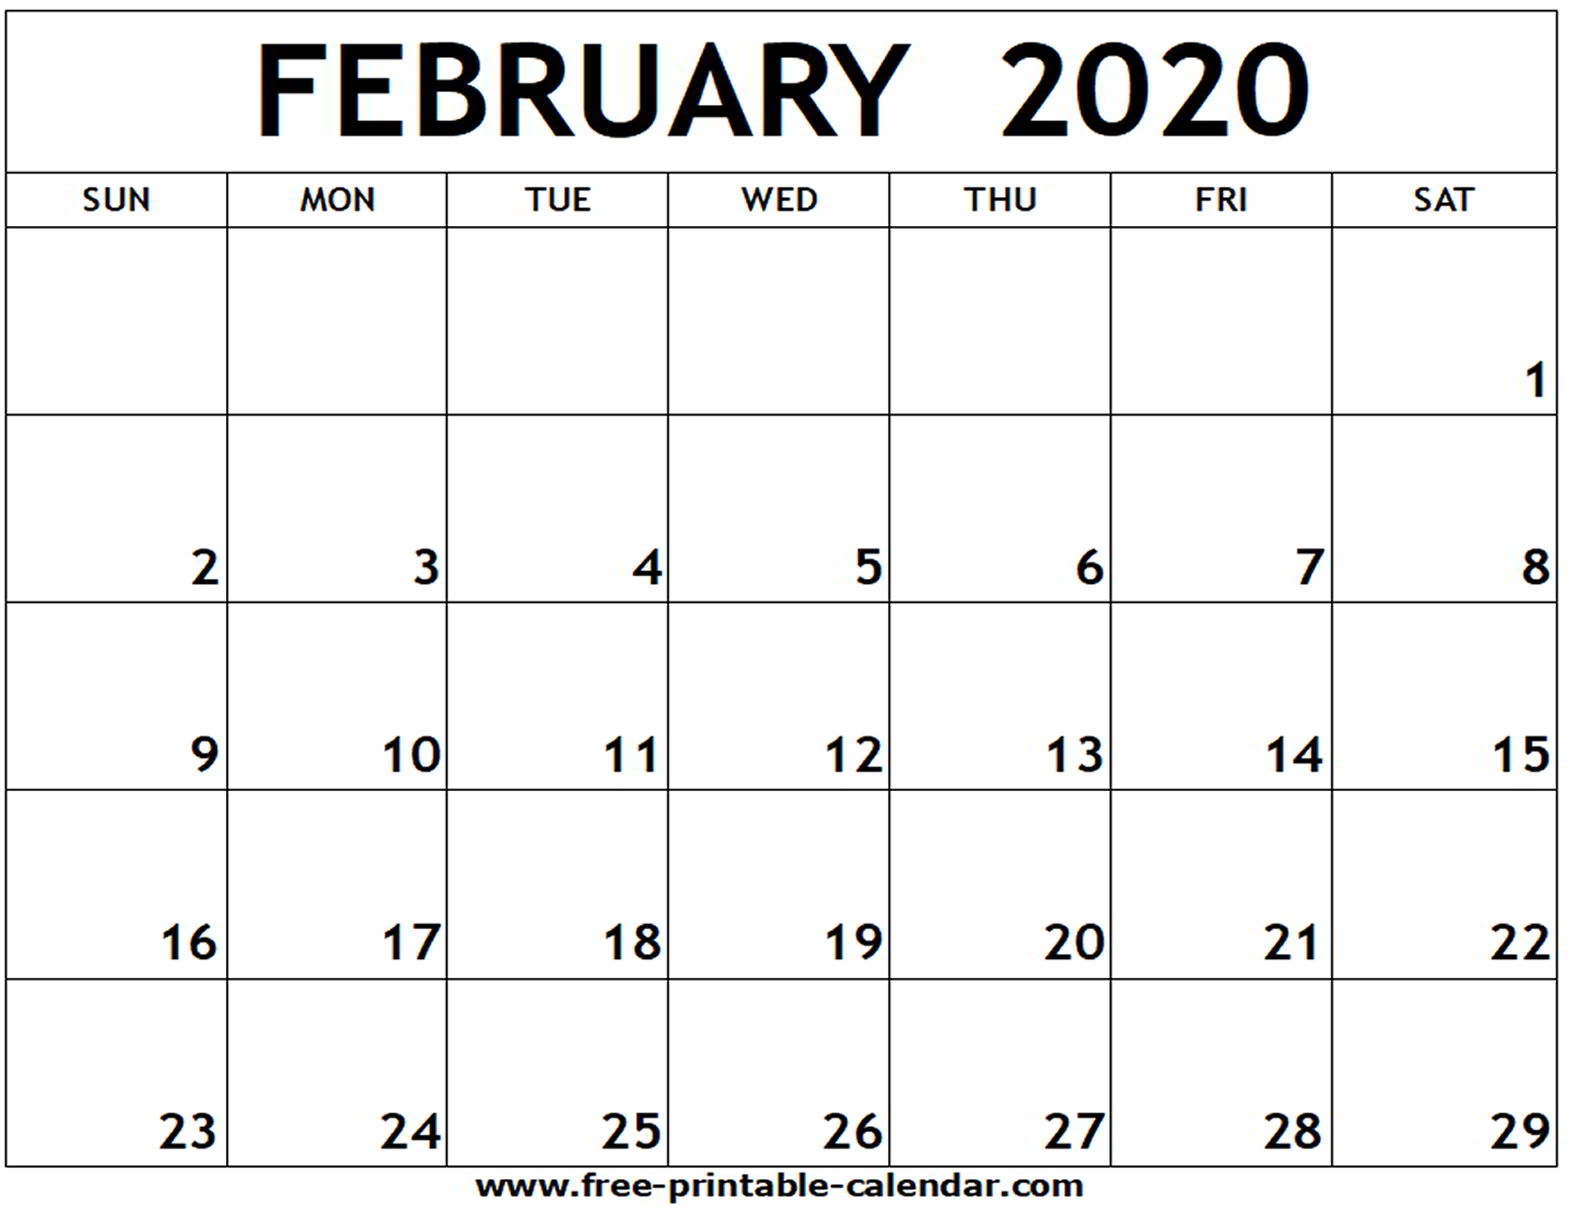 Monthly Calendar February 2020 Printable  Bolan pertaining to February 2020 Daily Calendar